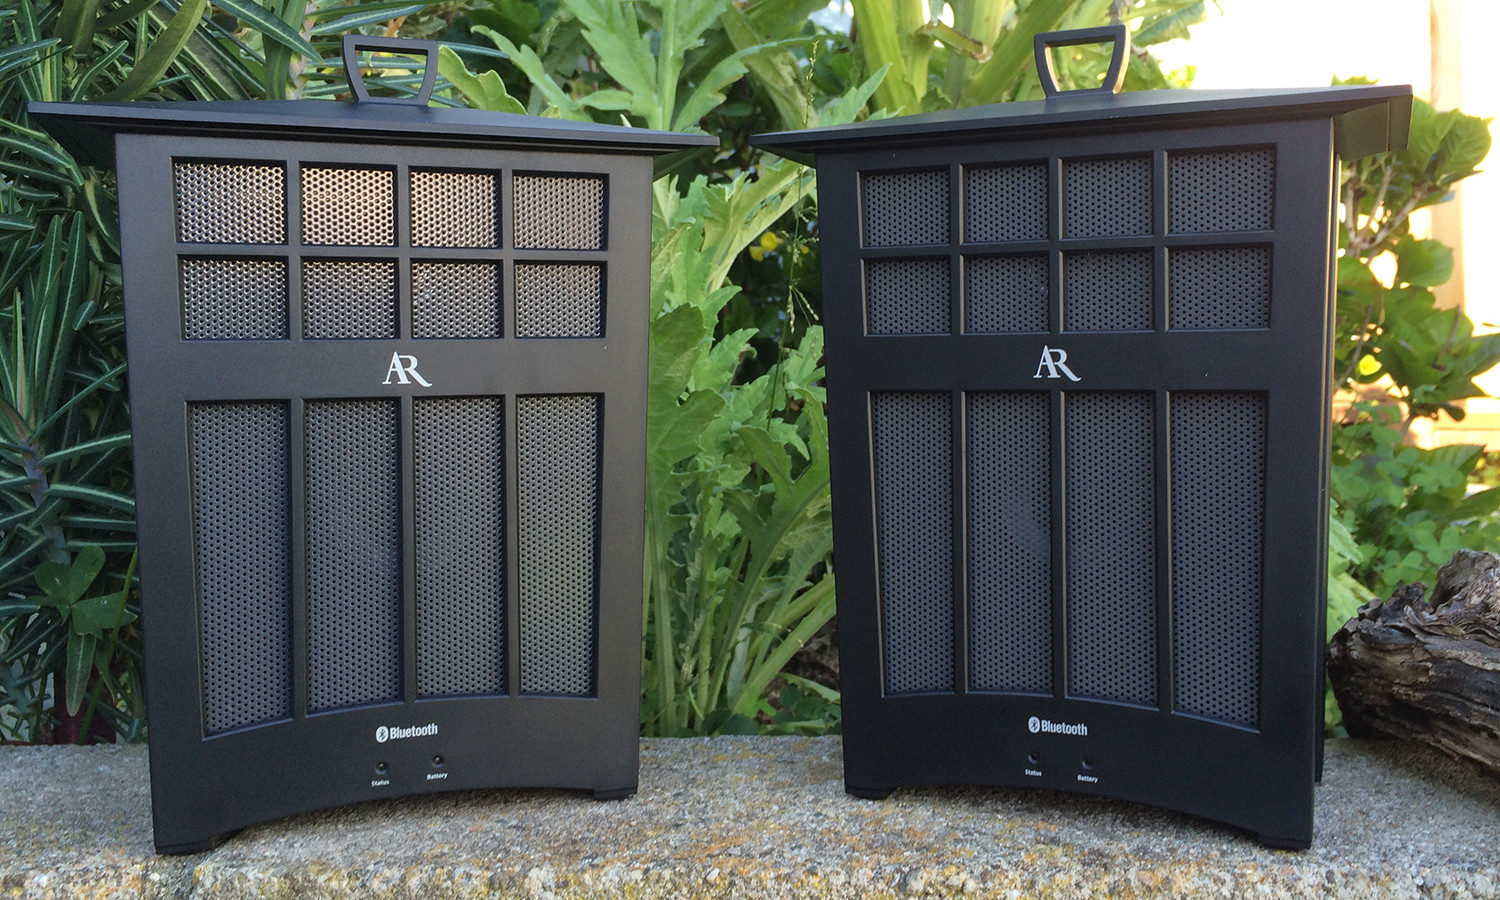 Best ideas about Best Outdoor Speakers . Save or Pin Best Outdoor Speakers 2015 Deck Garden Patio Portable Now.